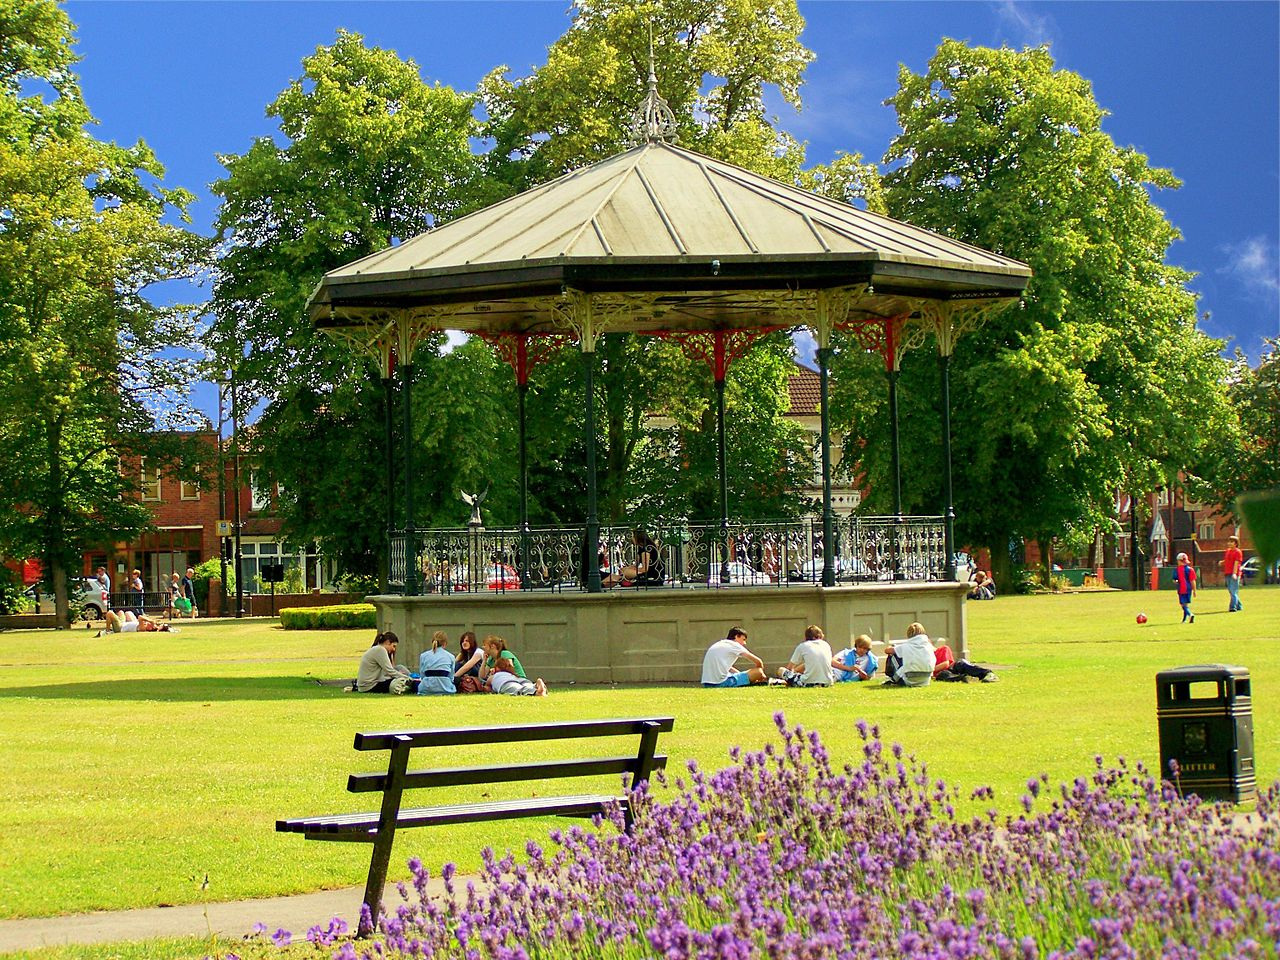 A Victorian bandstand In Eastleigh Hampshire, Copyright to Marek69